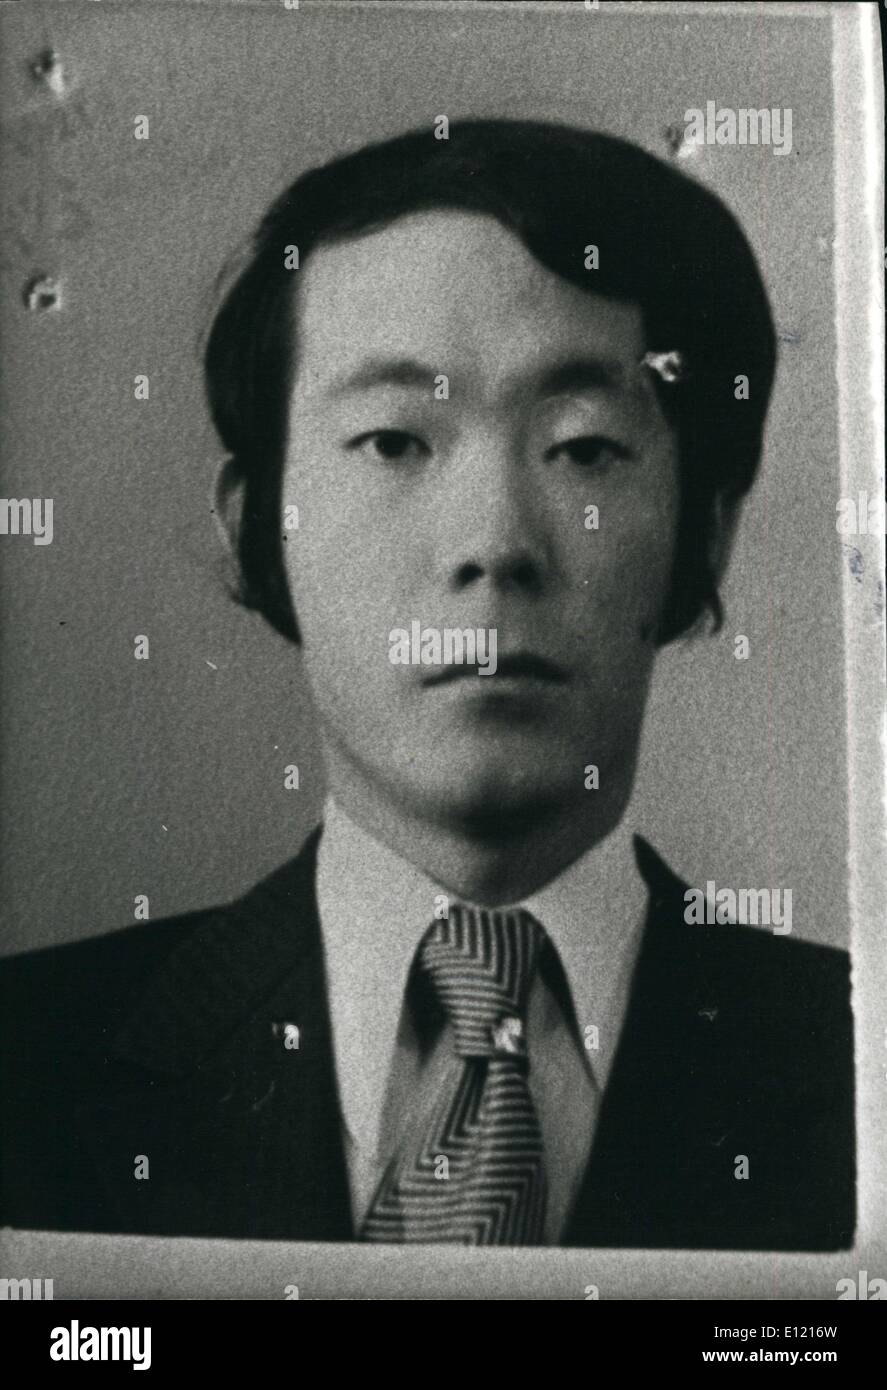 an interview with issei sagawa Man, i'm really high right now, and i'm watching this interview with that japanese guy who shot and ate a chick while in university he was found.